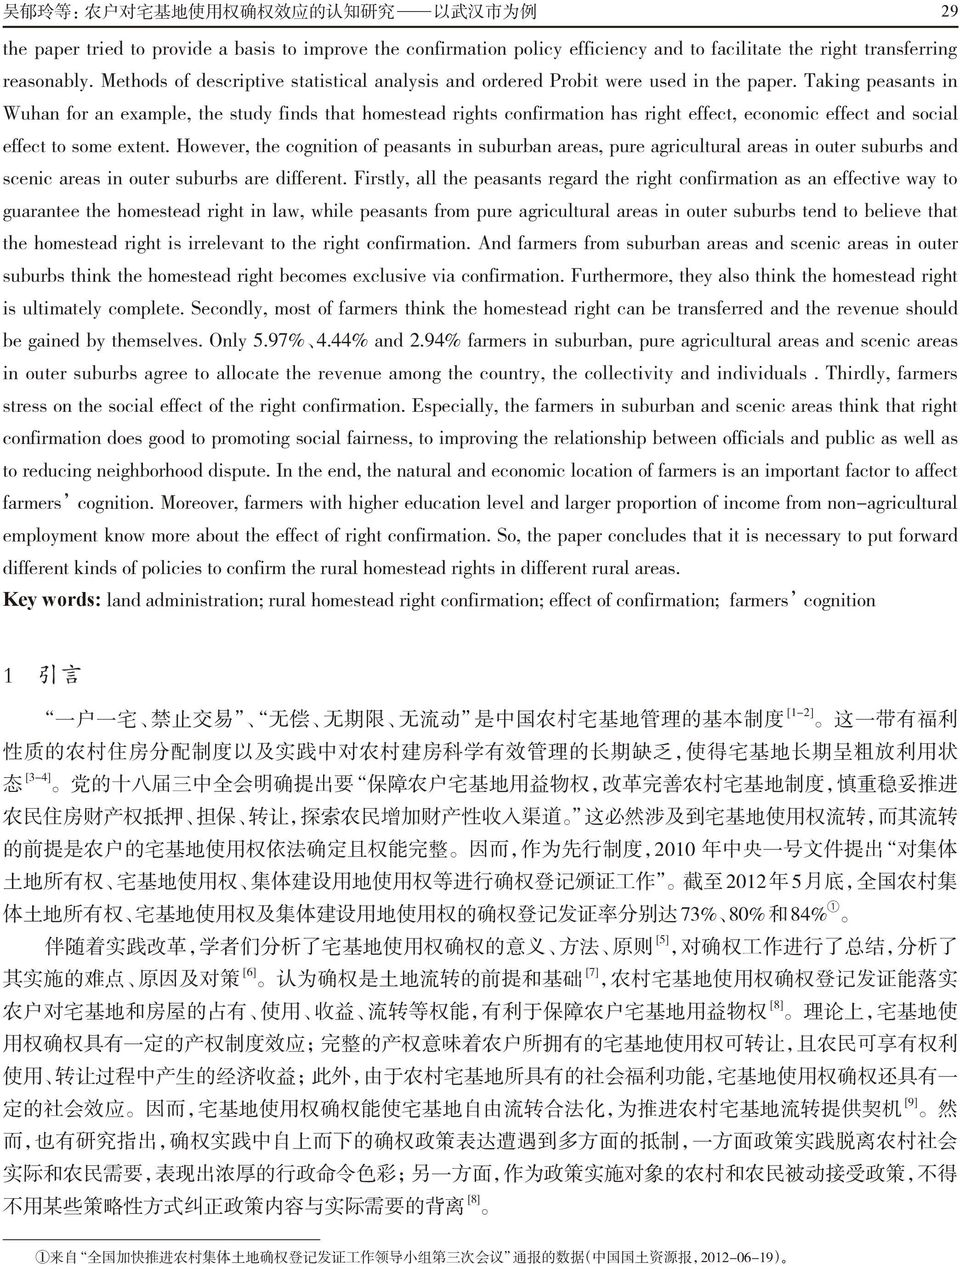 Taking peasants in Wuhan for an example, the study finds that homestead rights confirmation has right effect, economic effect and social effect to some extent.